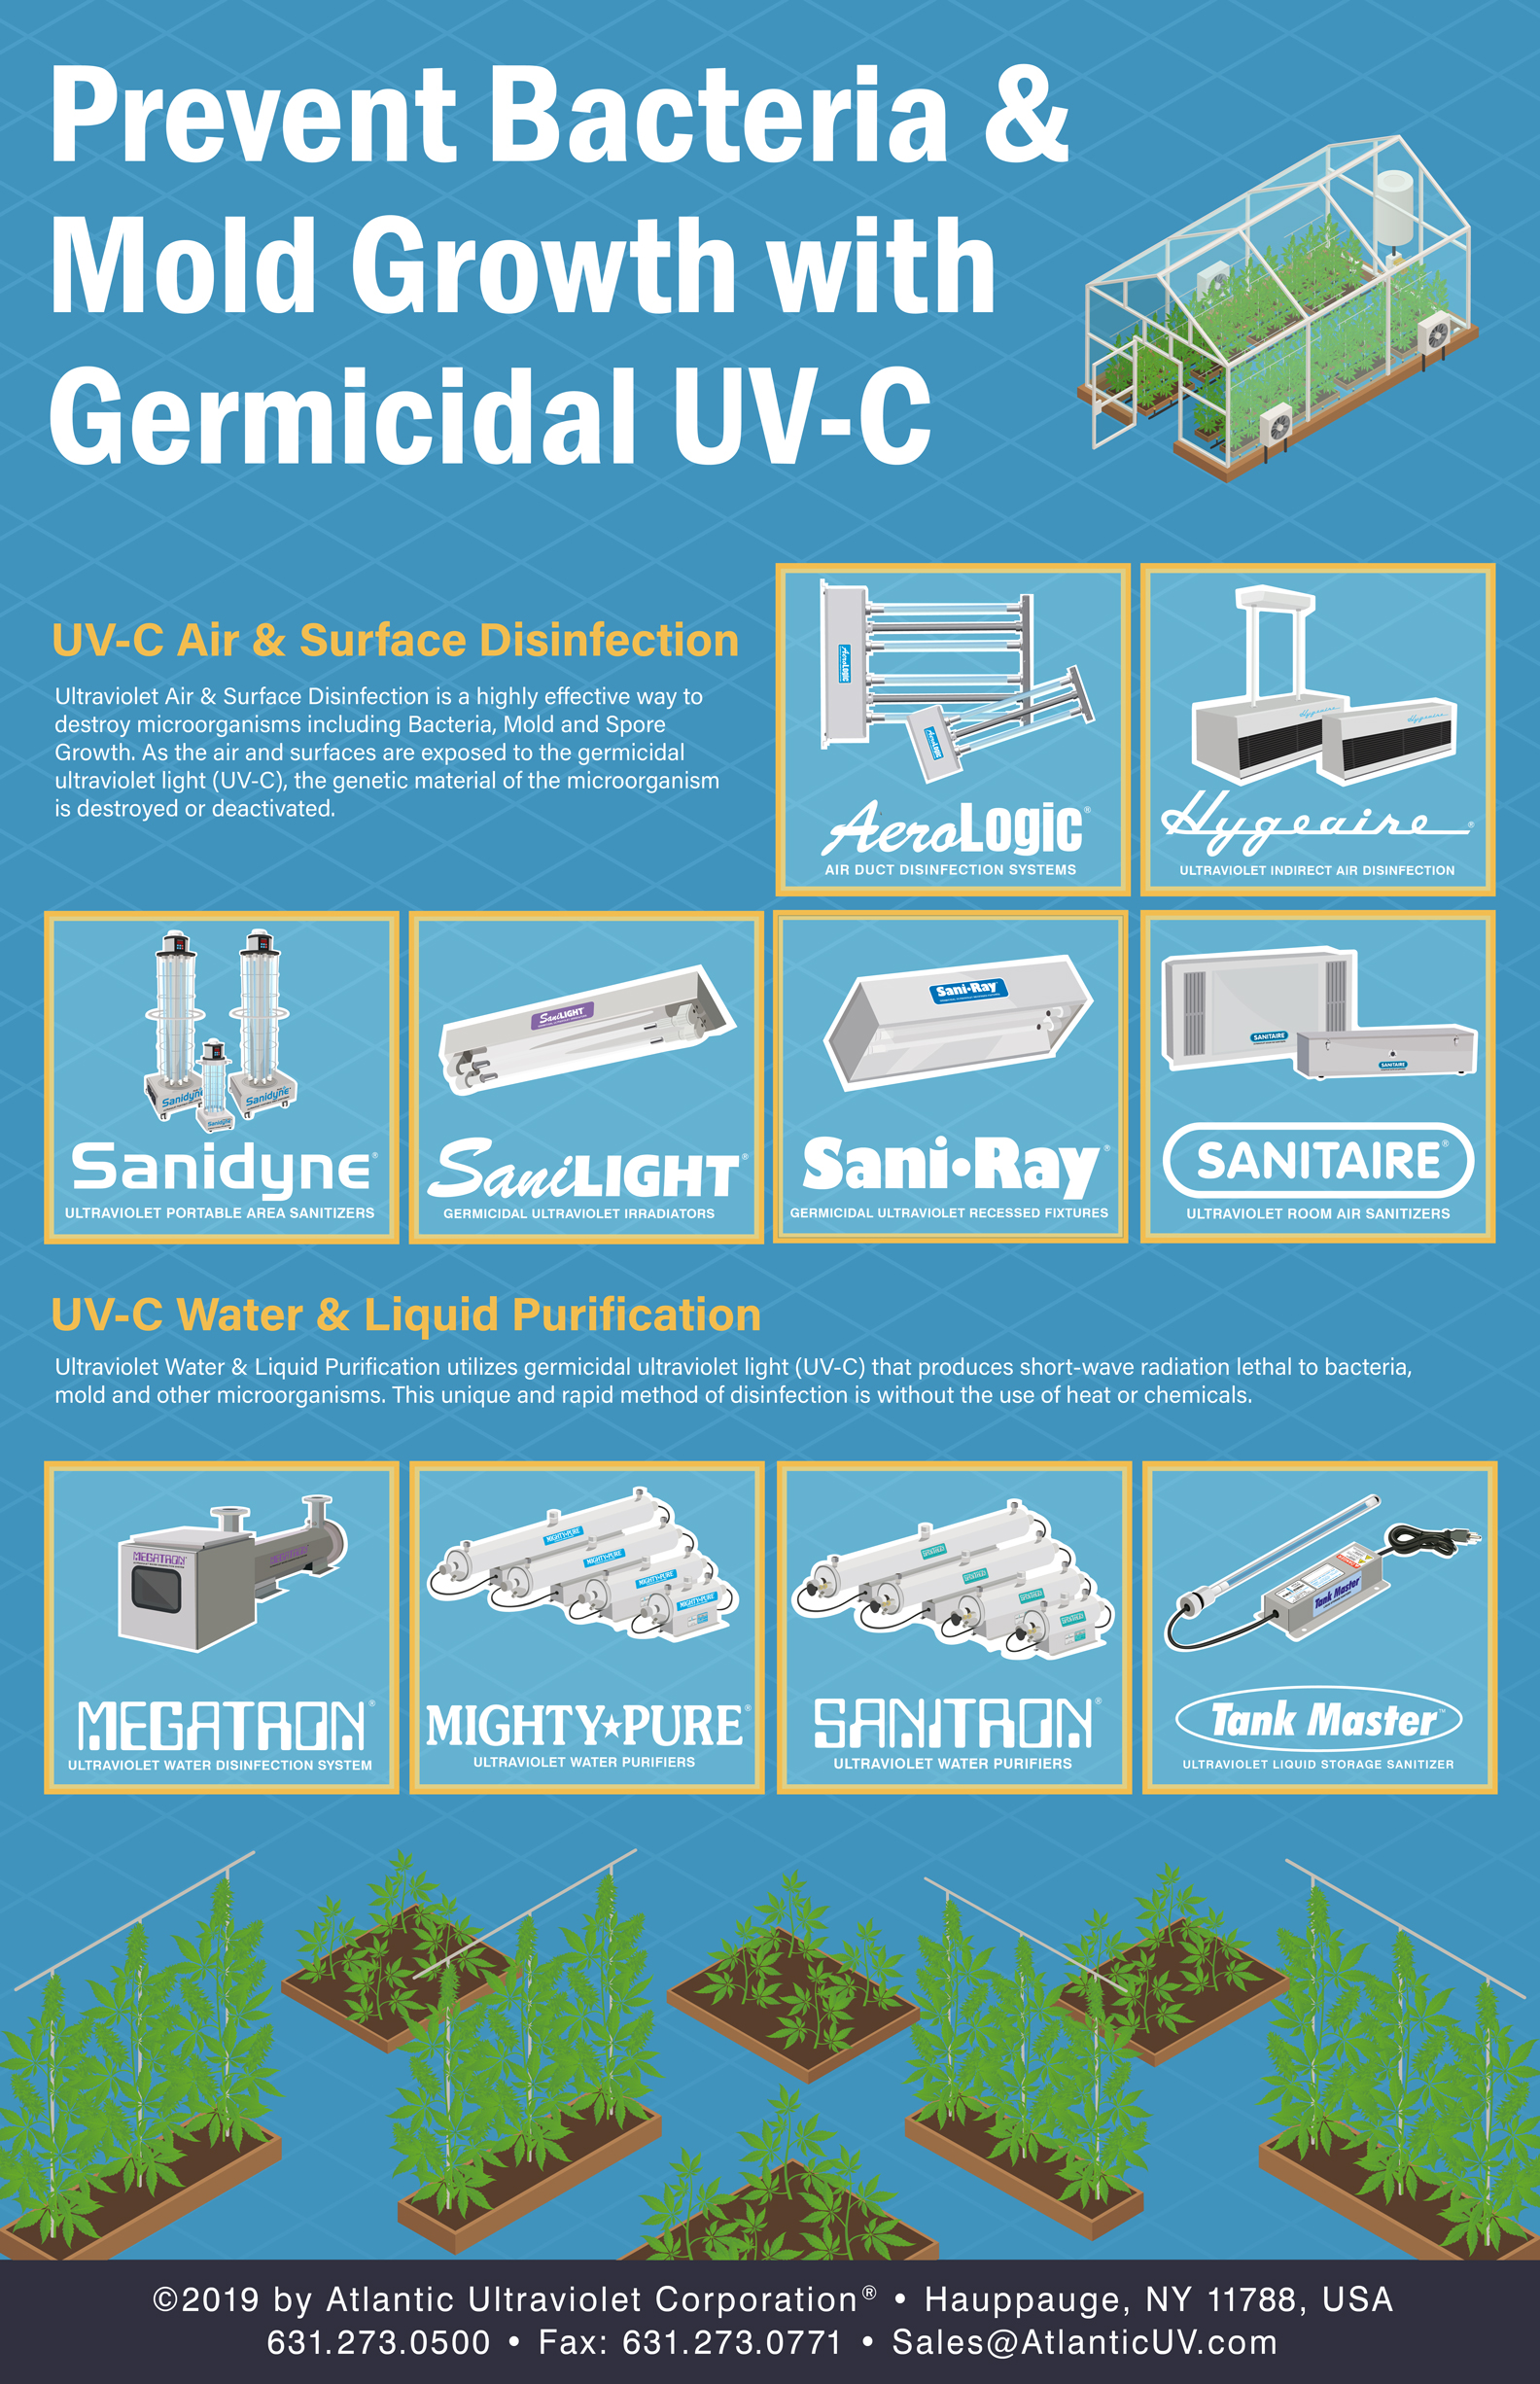 Visual: Our UV-C Disinfection & Purification Products Can Help Prevent Bacteria & Mold Growth